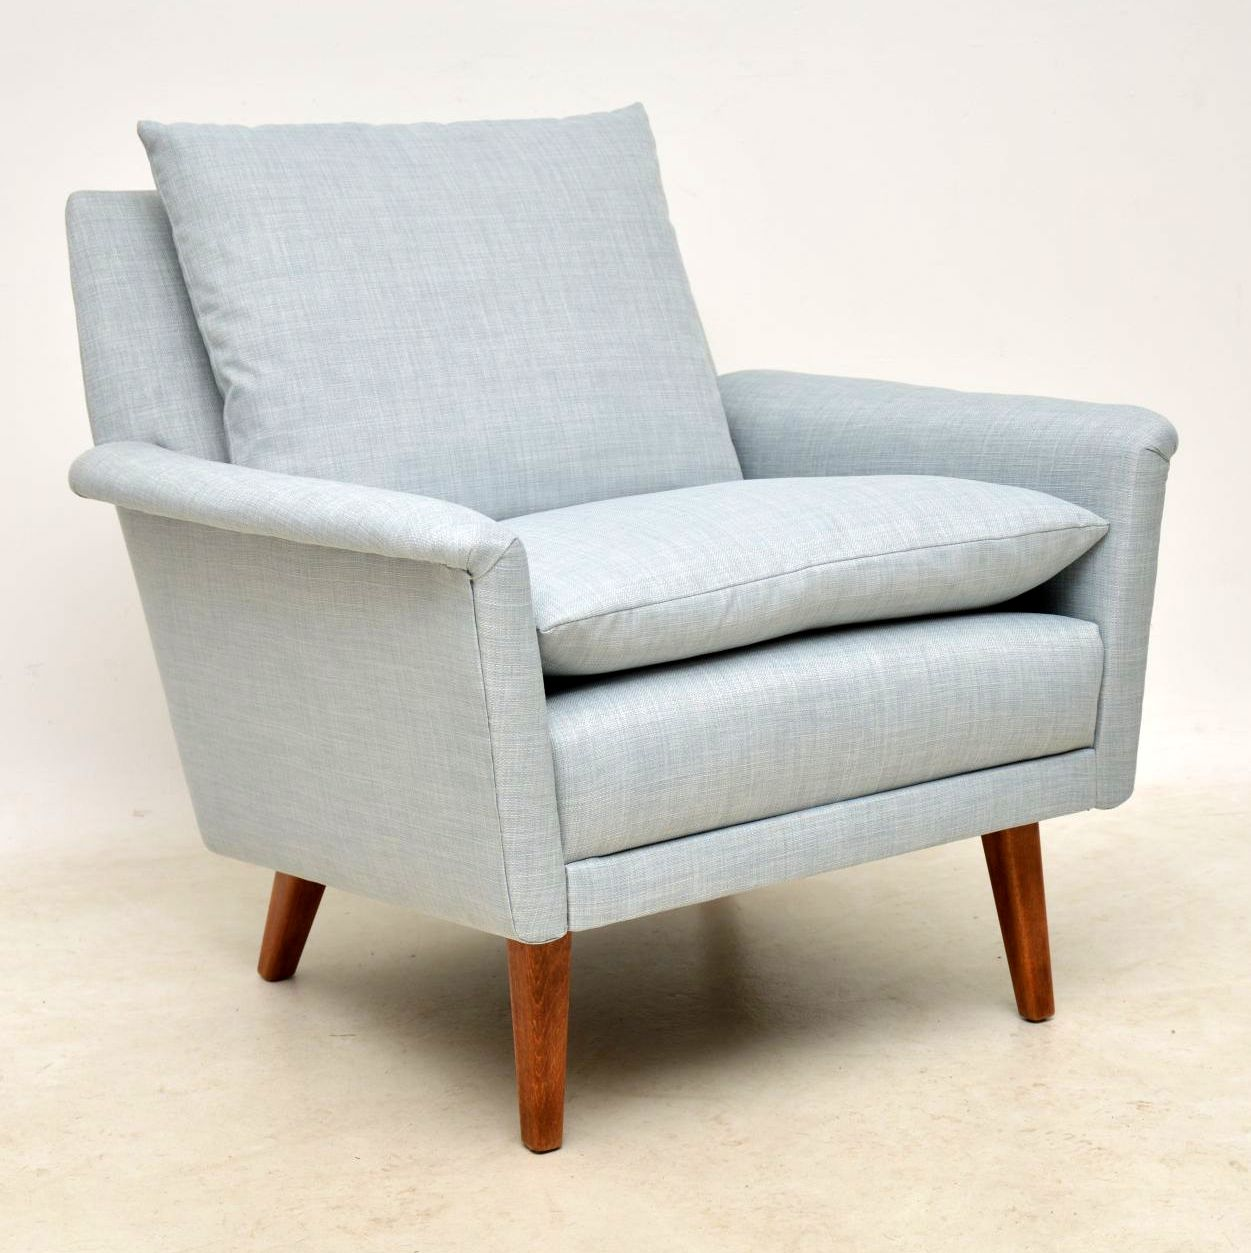 feather filled sofas second hand olivia sofa z gallerie 1960s vintage pair of danish armchairs retrospective